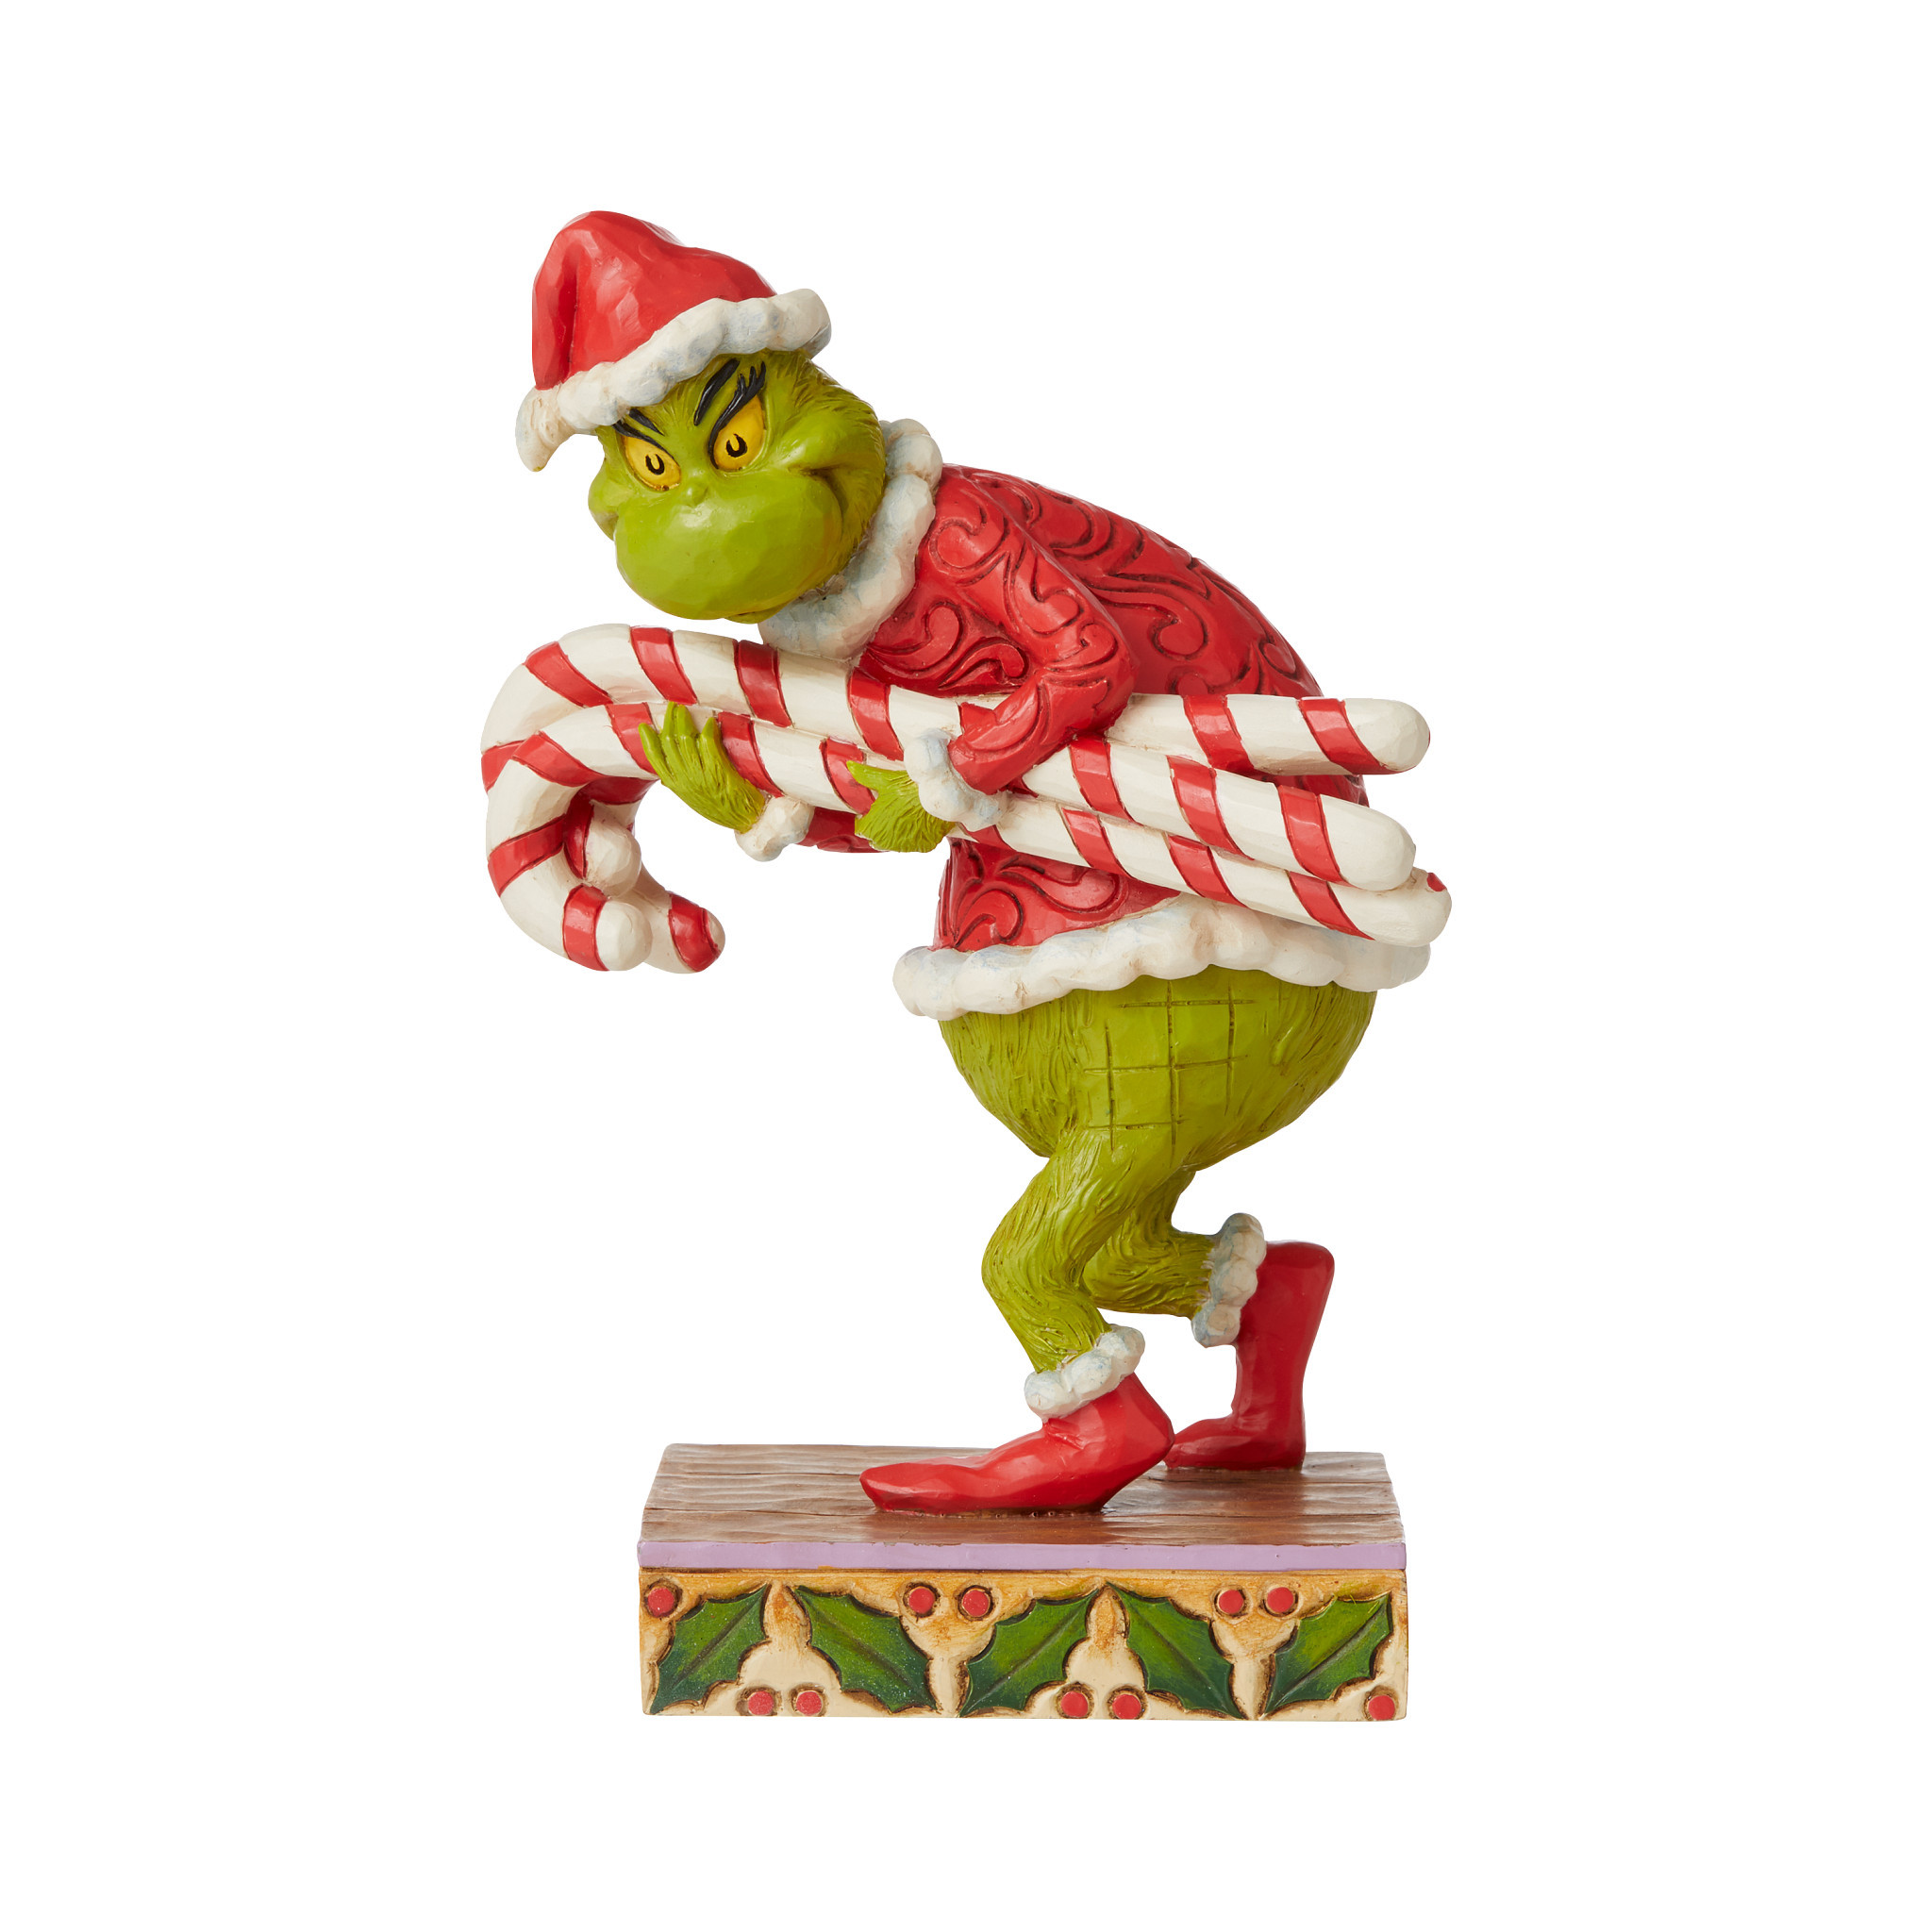 Jim Shore - Figurines 'Grinch Stealing Candy Cane N' 2021